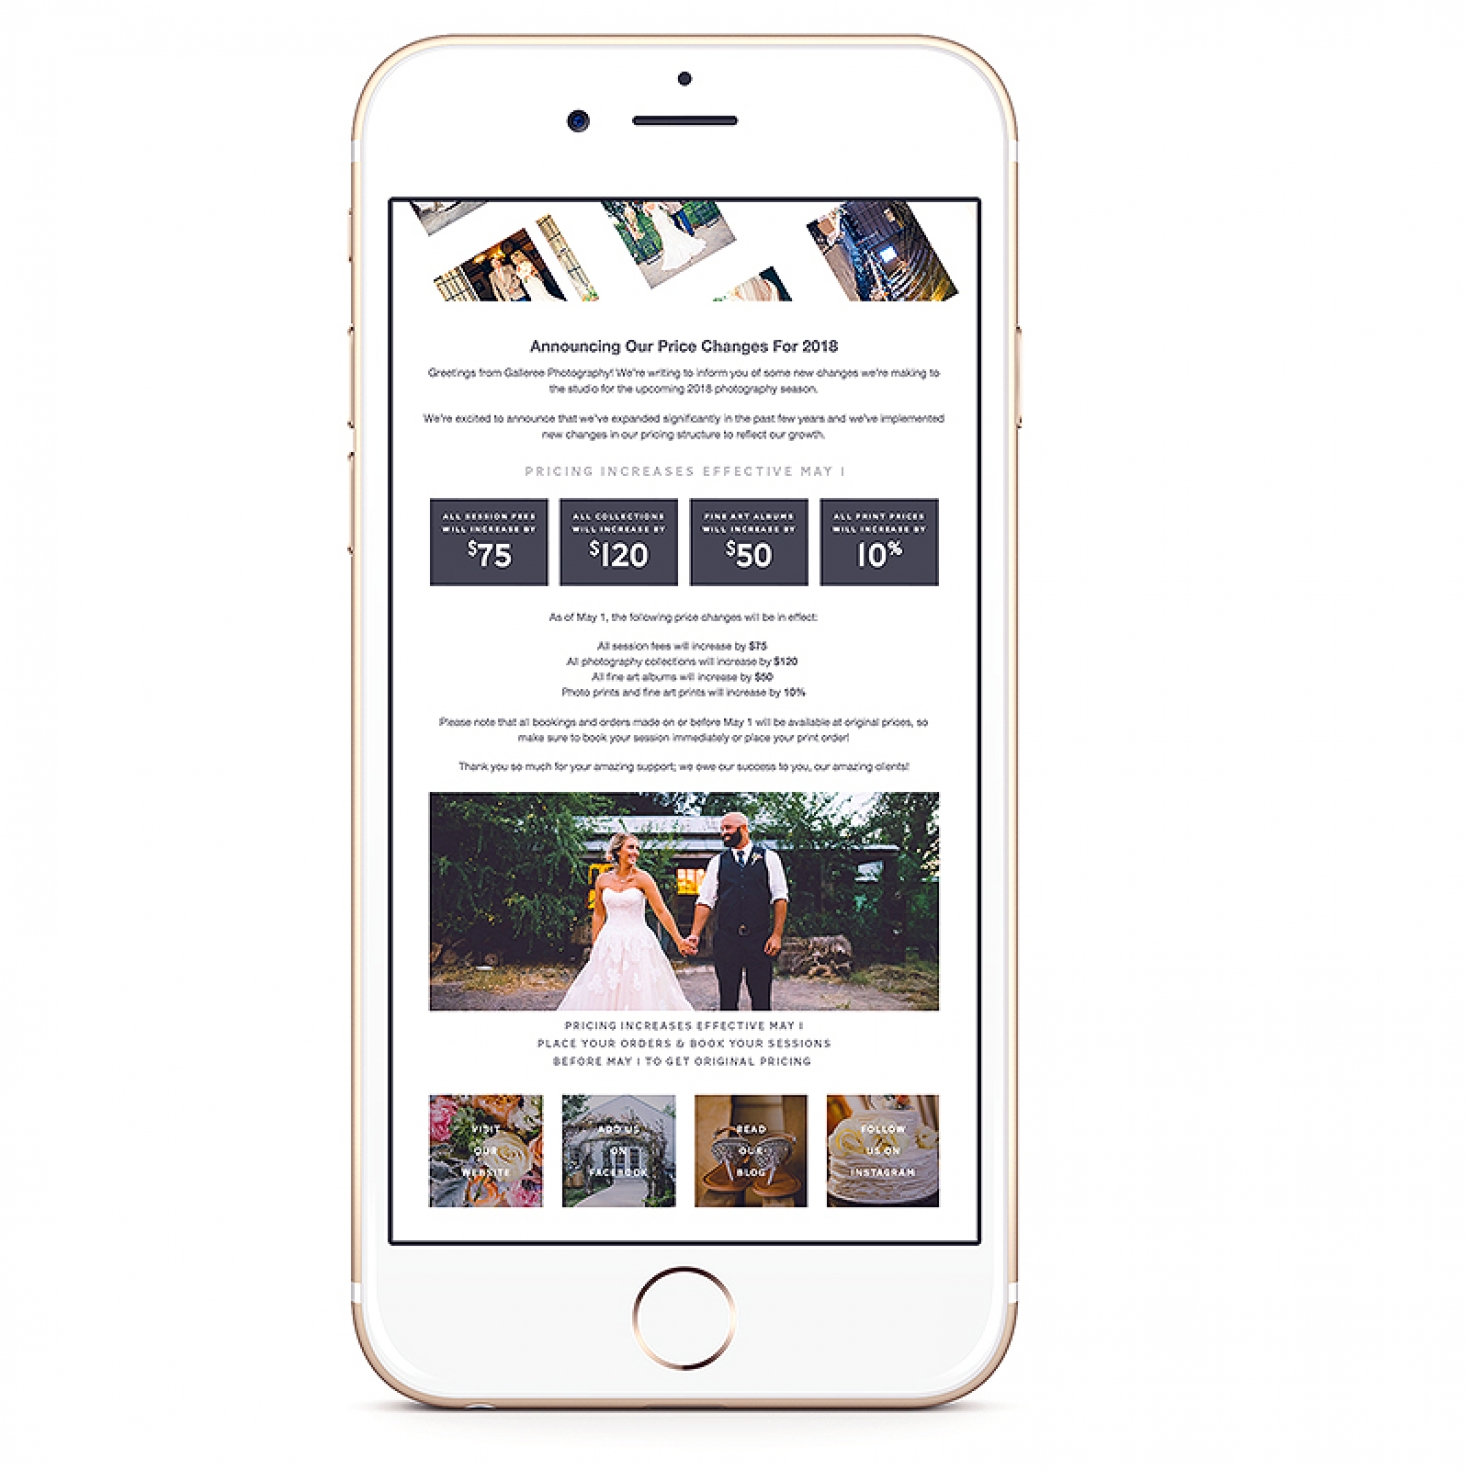 Pricing Increase Email Notification | Shopgalleree.com - Photography Marketing, Design Templates for Photographers